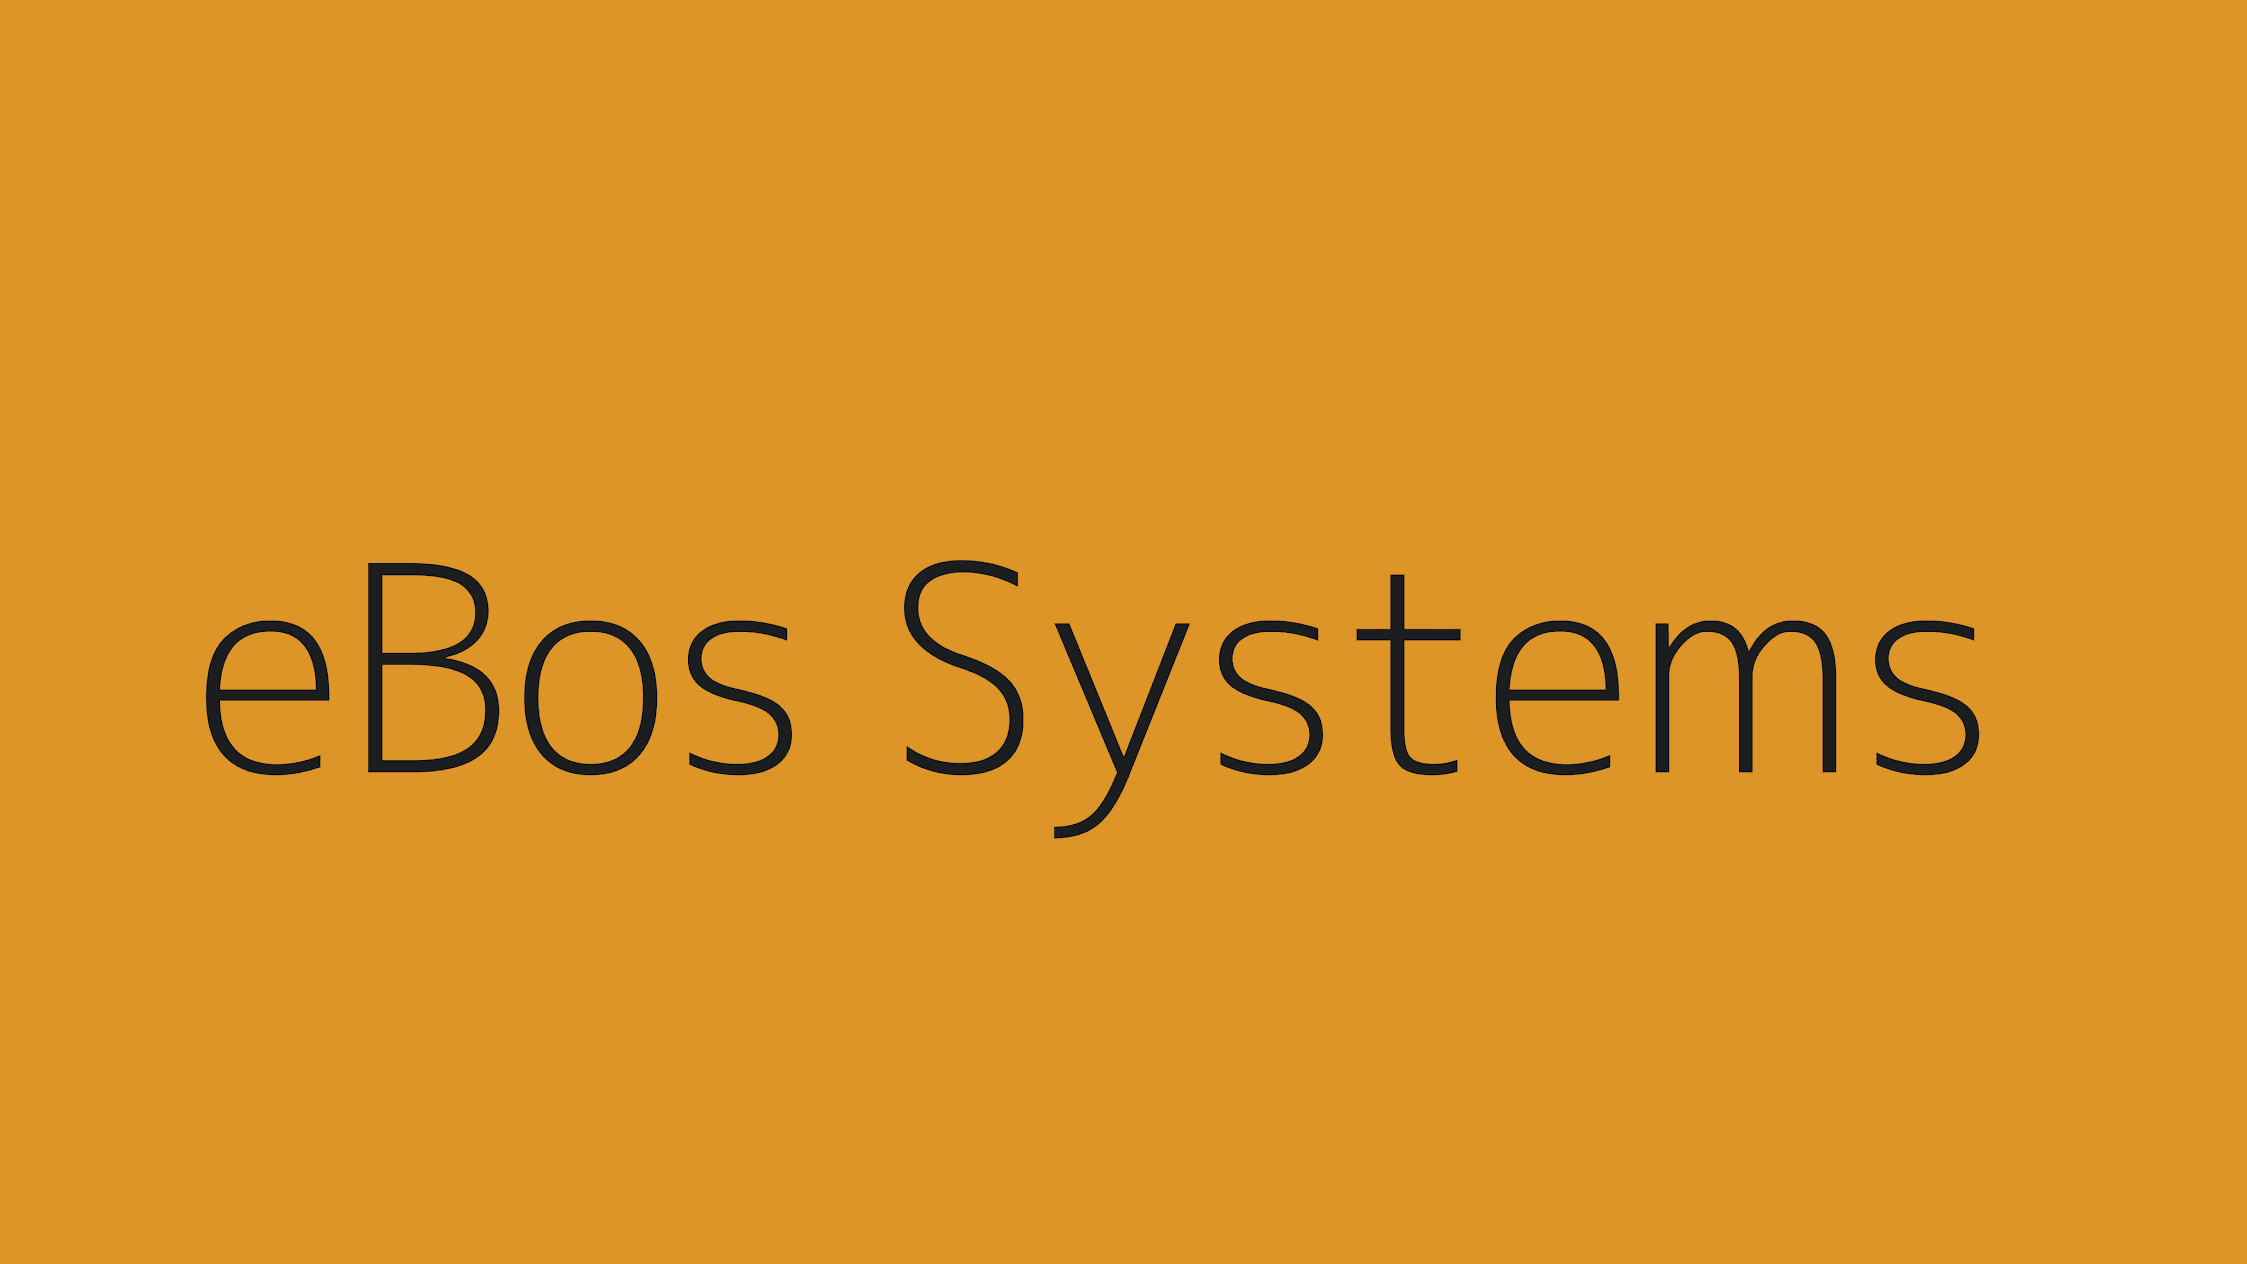 Android Apps by eBos Systems on Google Play.